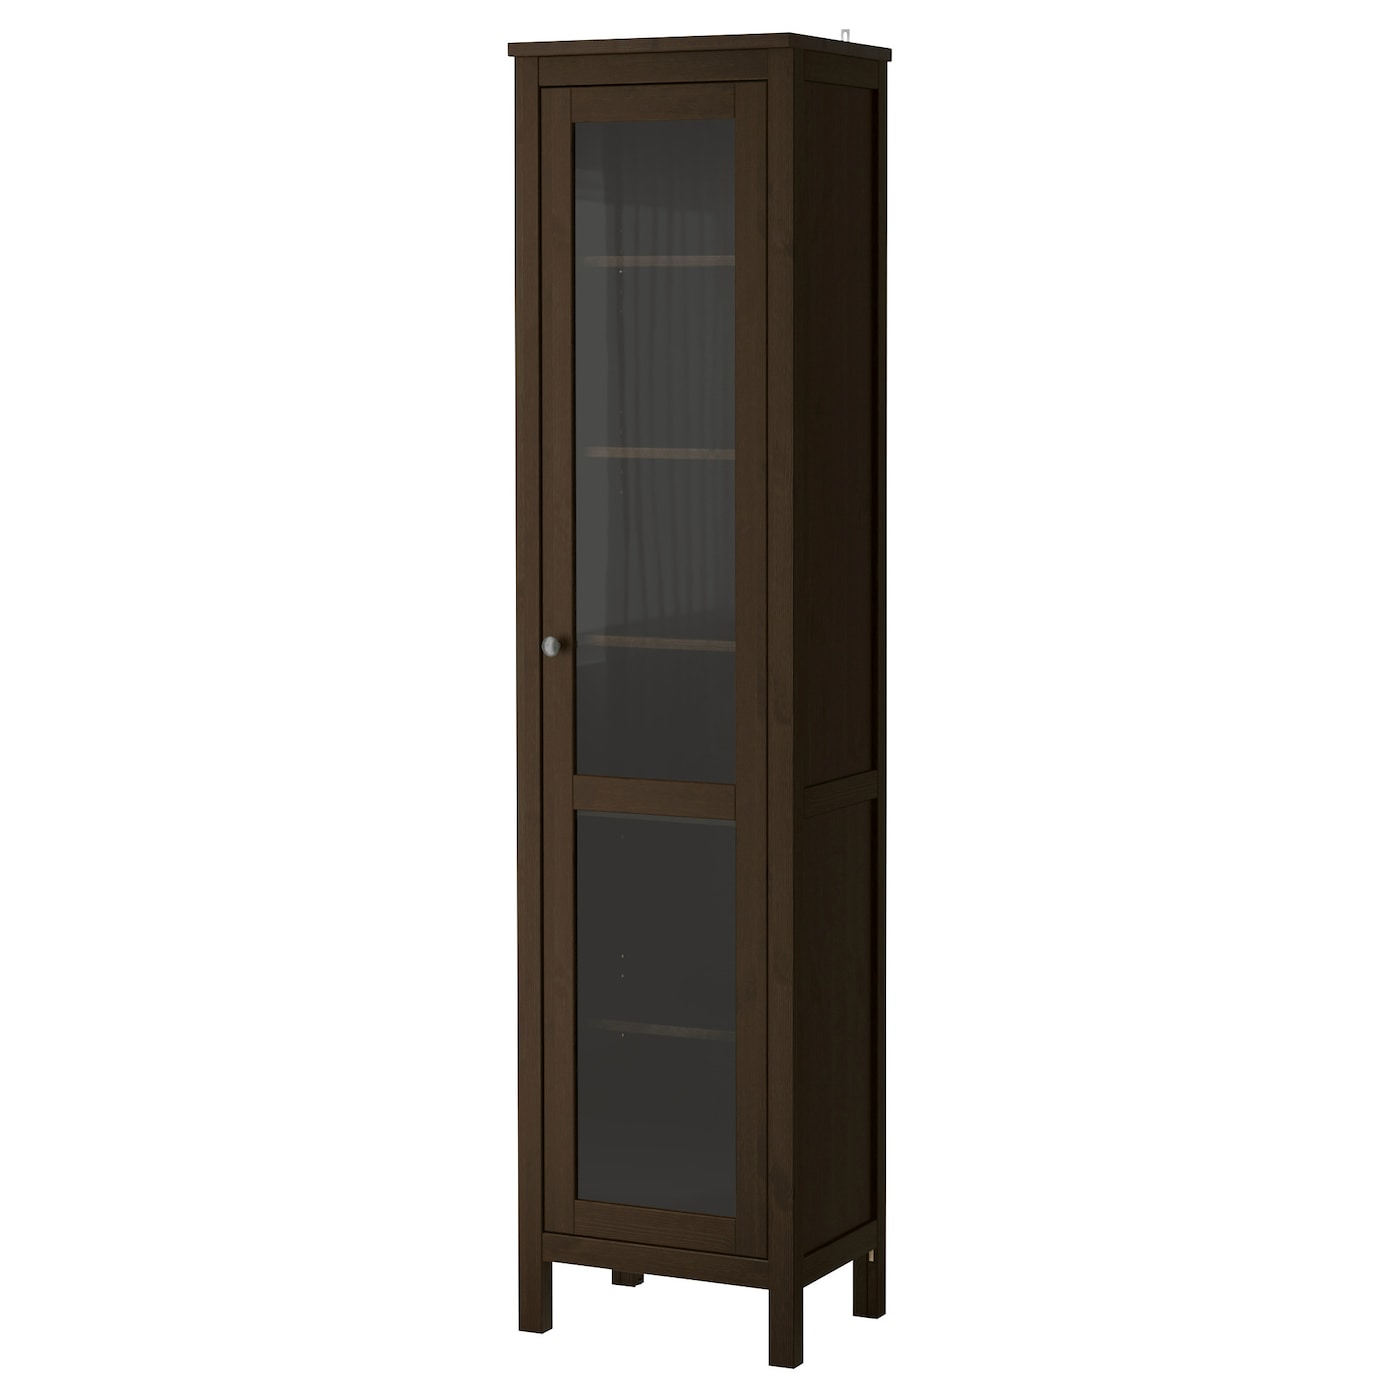 Ikea Poang Chair Leather Cushion ~ IKEA HEMNES glass door cabinet Solid wood has a natural feel 1 fixed